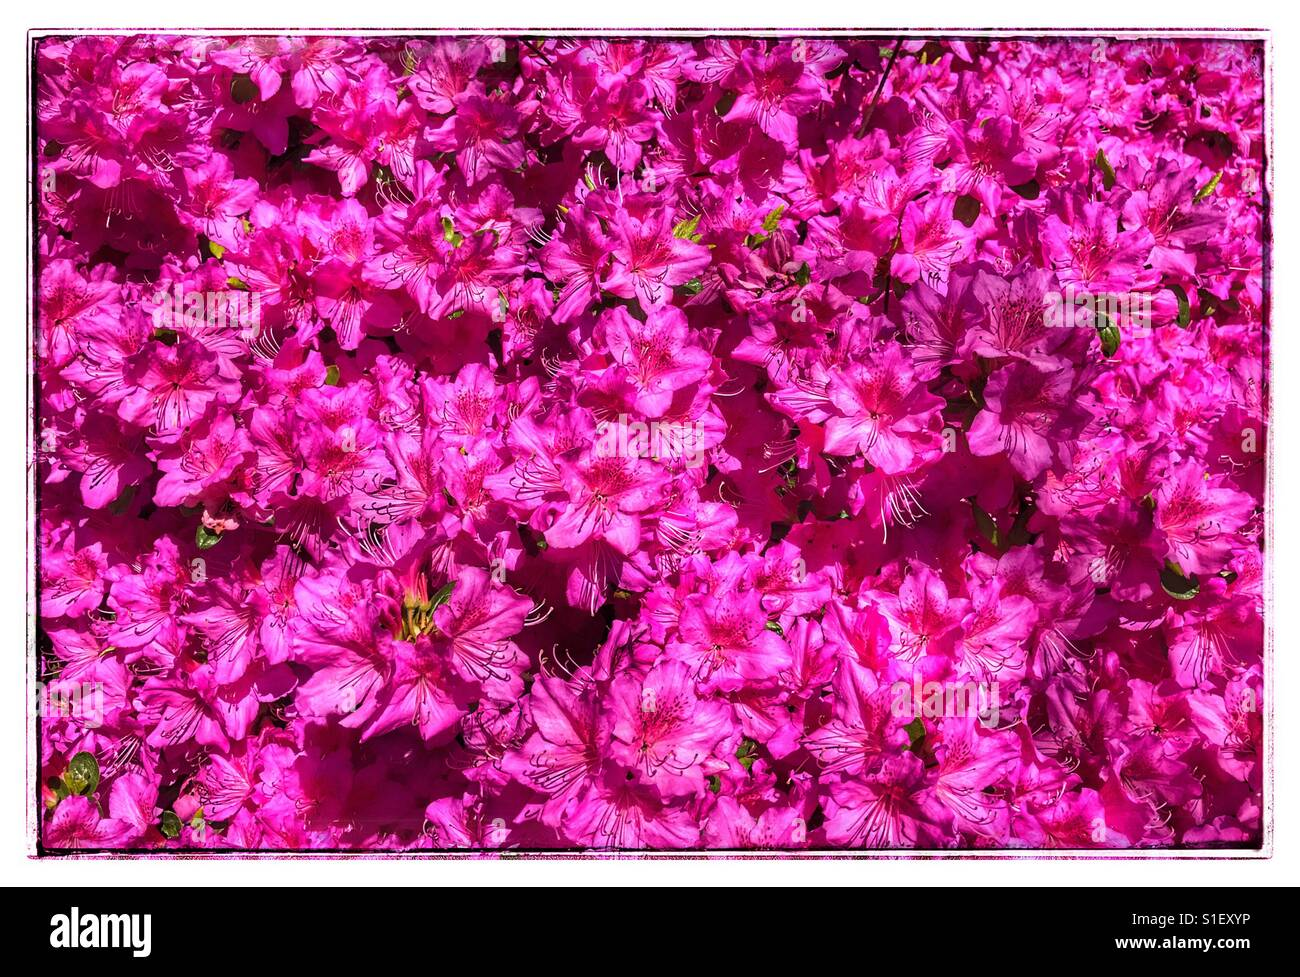 Hot pink flowers stock photos hot pink flowers stock images alamy hot pink flowers stock image mightylinksfo